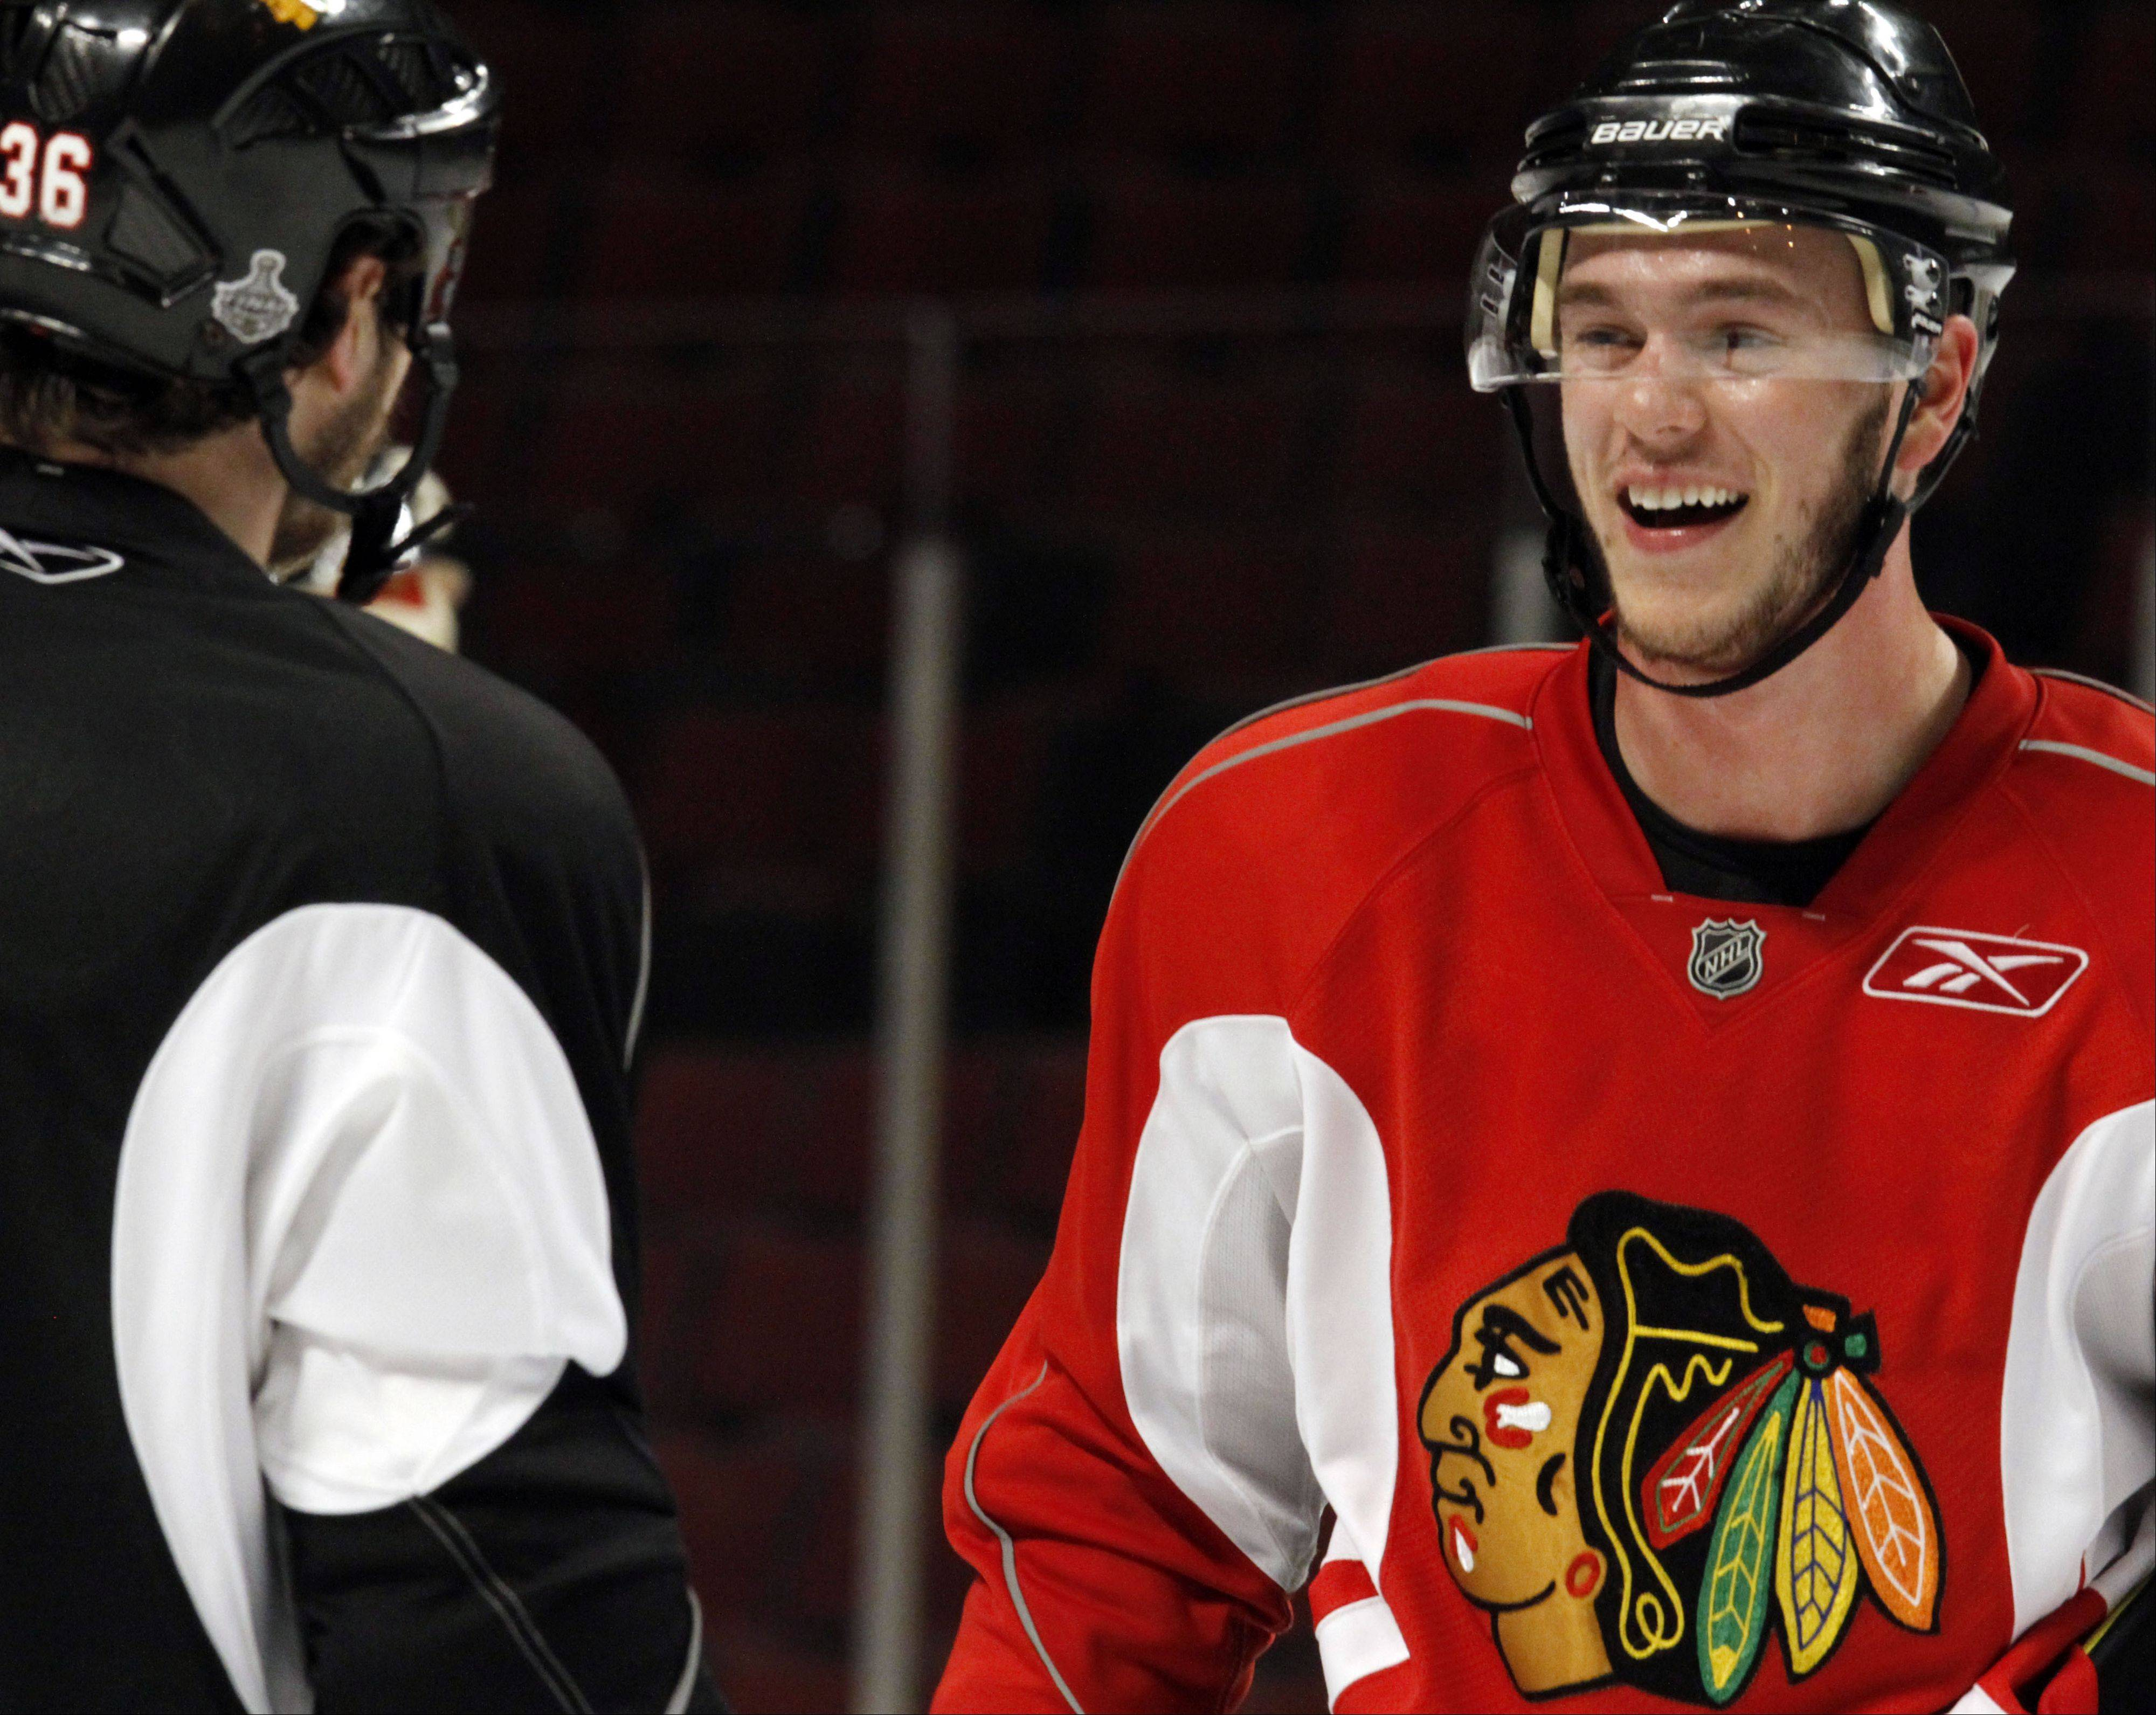 Hawks' Toews excited about end to NHL lockout